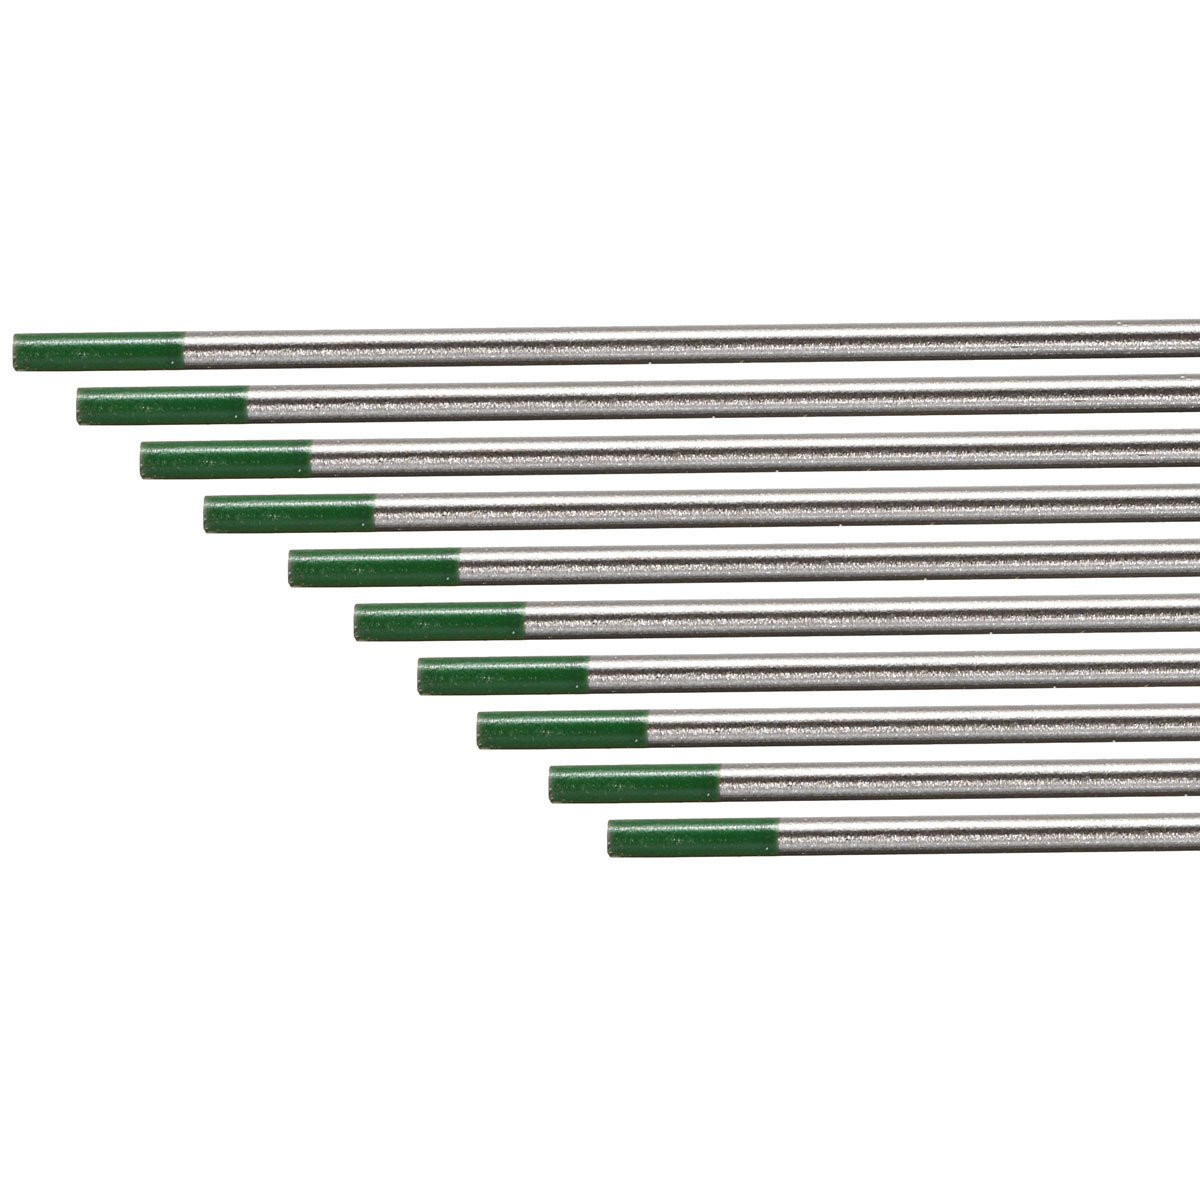 Best Price 10PCS/set 2.4*175mm WP Green Welding Tungsten Electrode Welding Electrodes high electron escape work for AC welding